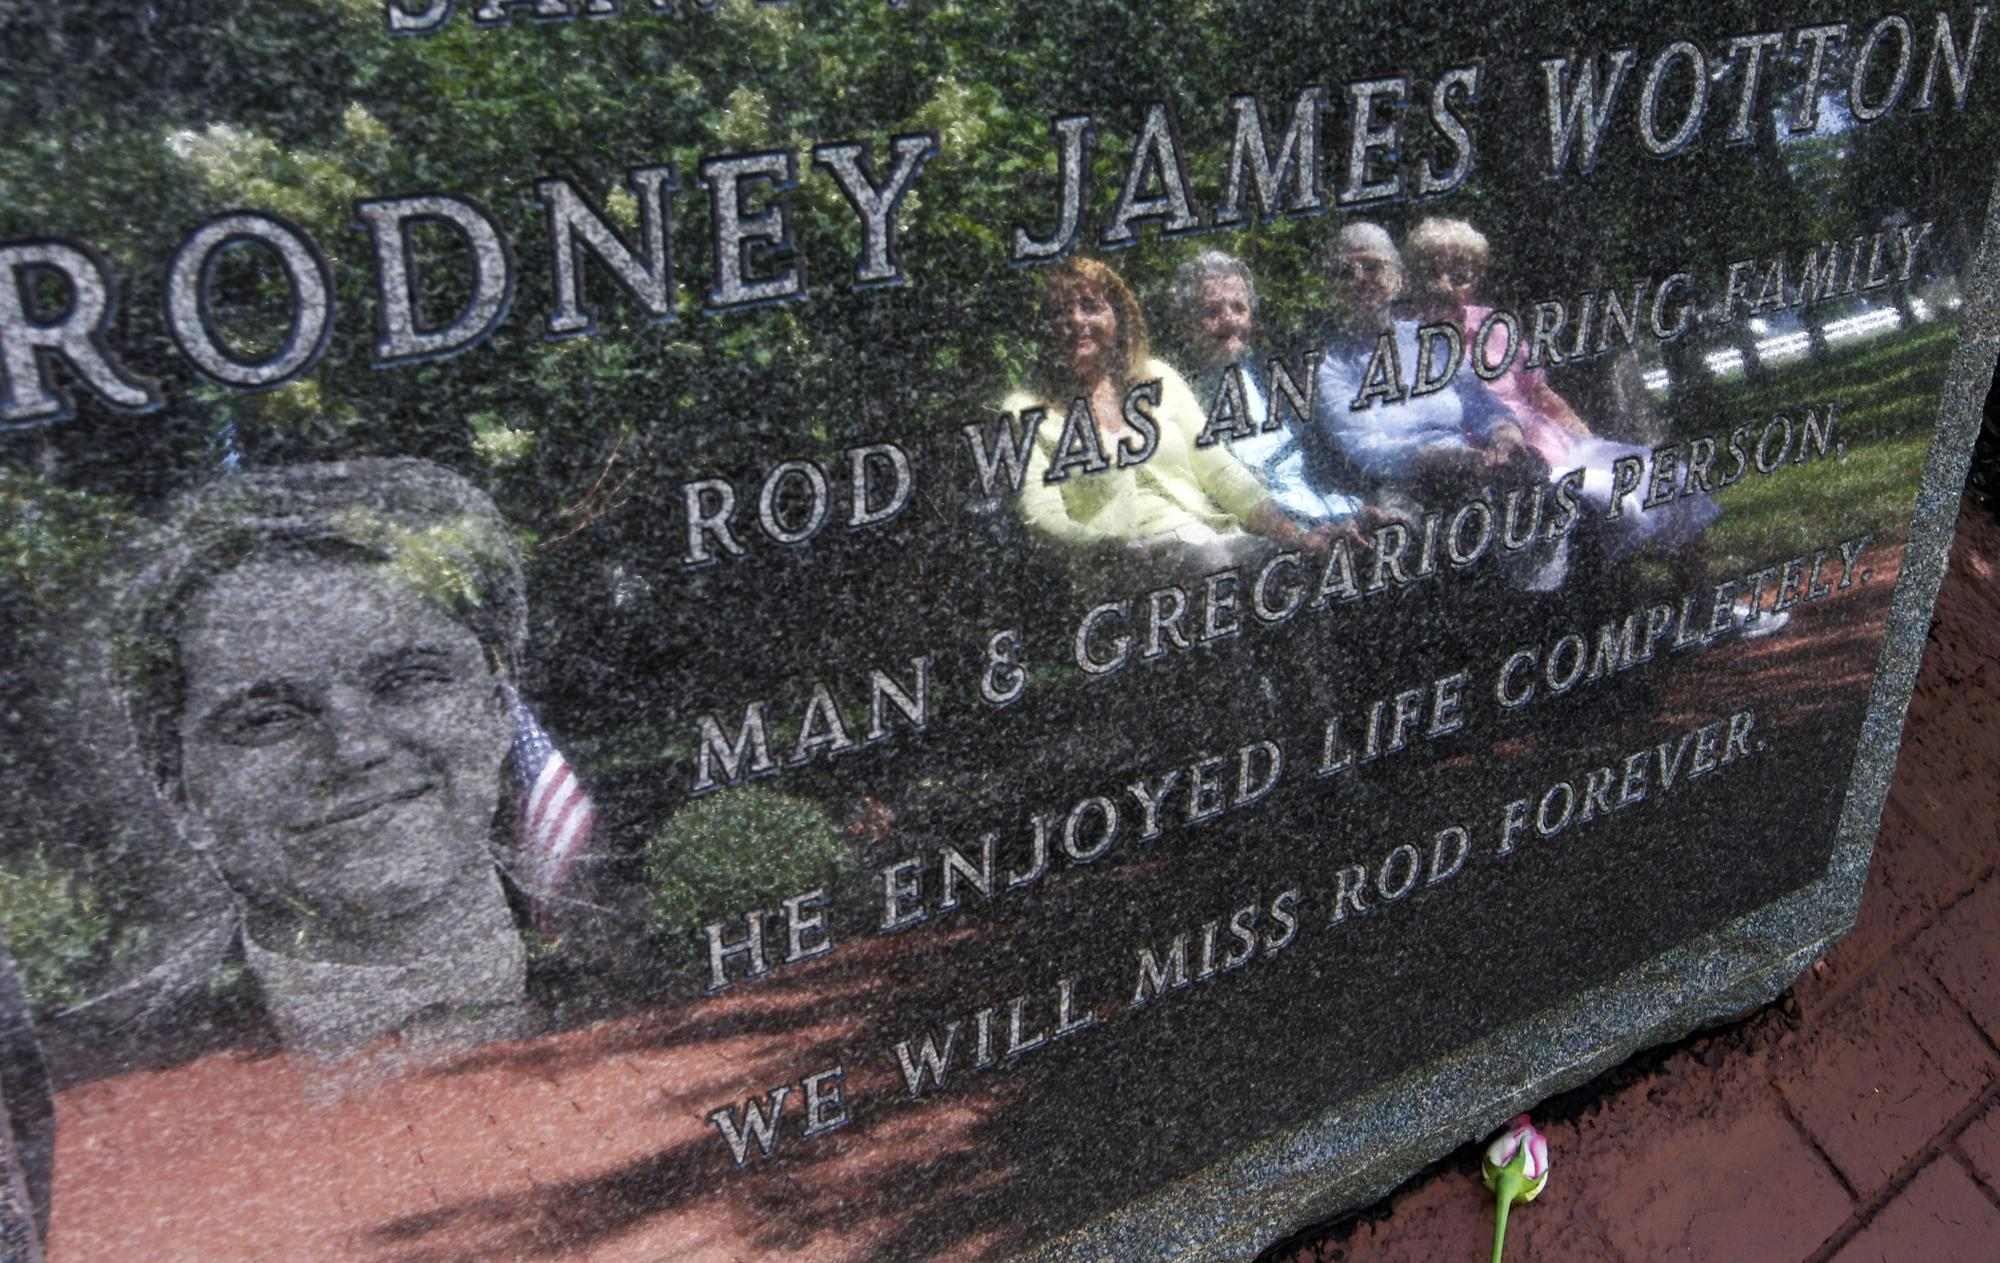 ADVANCE FOR PUBLICATION ON SUNDAY, SEPT. 5, AND THEREAFTER - FILE - In this Tuesday, Sept. 11, 2012 file photo, Pat Wotton, left, is reflected in a memorial to her husband Rodney James Wotton, as she sits with Dorothy Greene, second left, Jean Wotton, Rodney's mother, and Eunice Saporito, right, in Middletown, N.J. The marker for Rodney Wotton is one of 37 in the Middletown World Trade Center Memorial Gardens for those from the town in central New Jersey, who died in the attack on the World Trade Center in 2001AP Photo/Mel Evans, File)